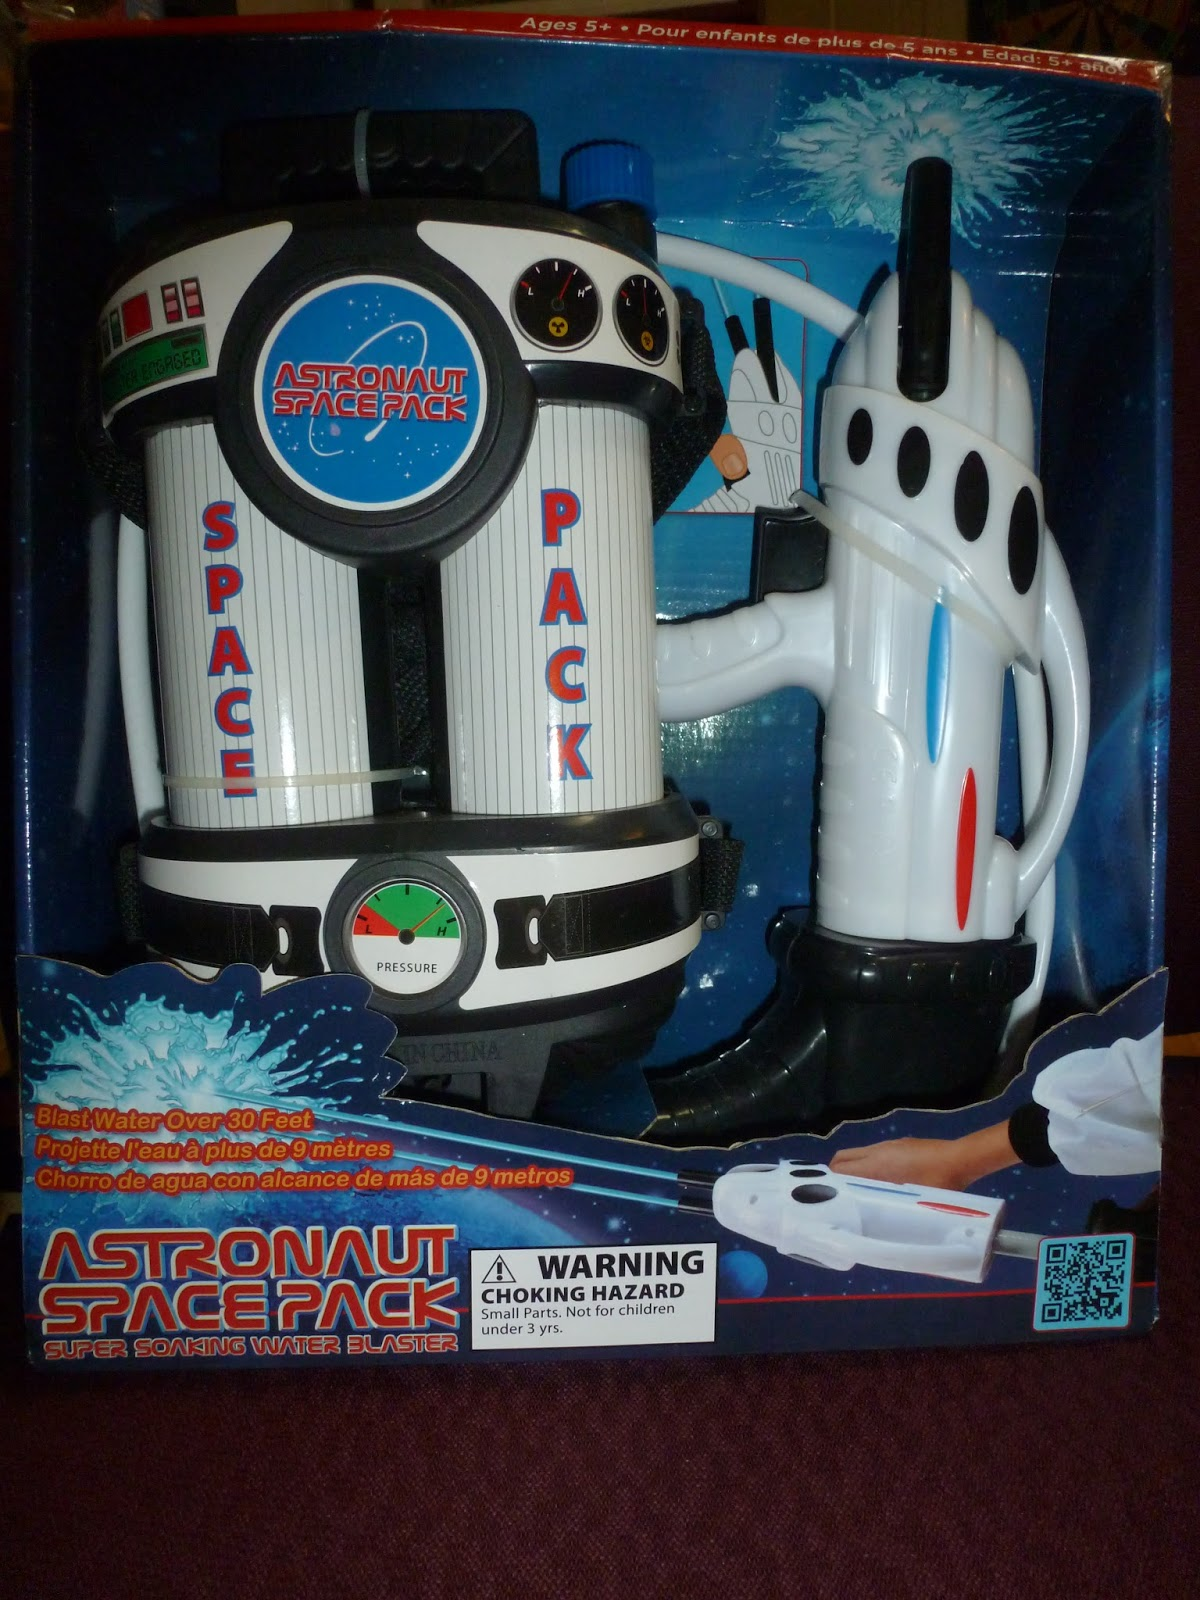 astronaut space pack water blaster - photo #8